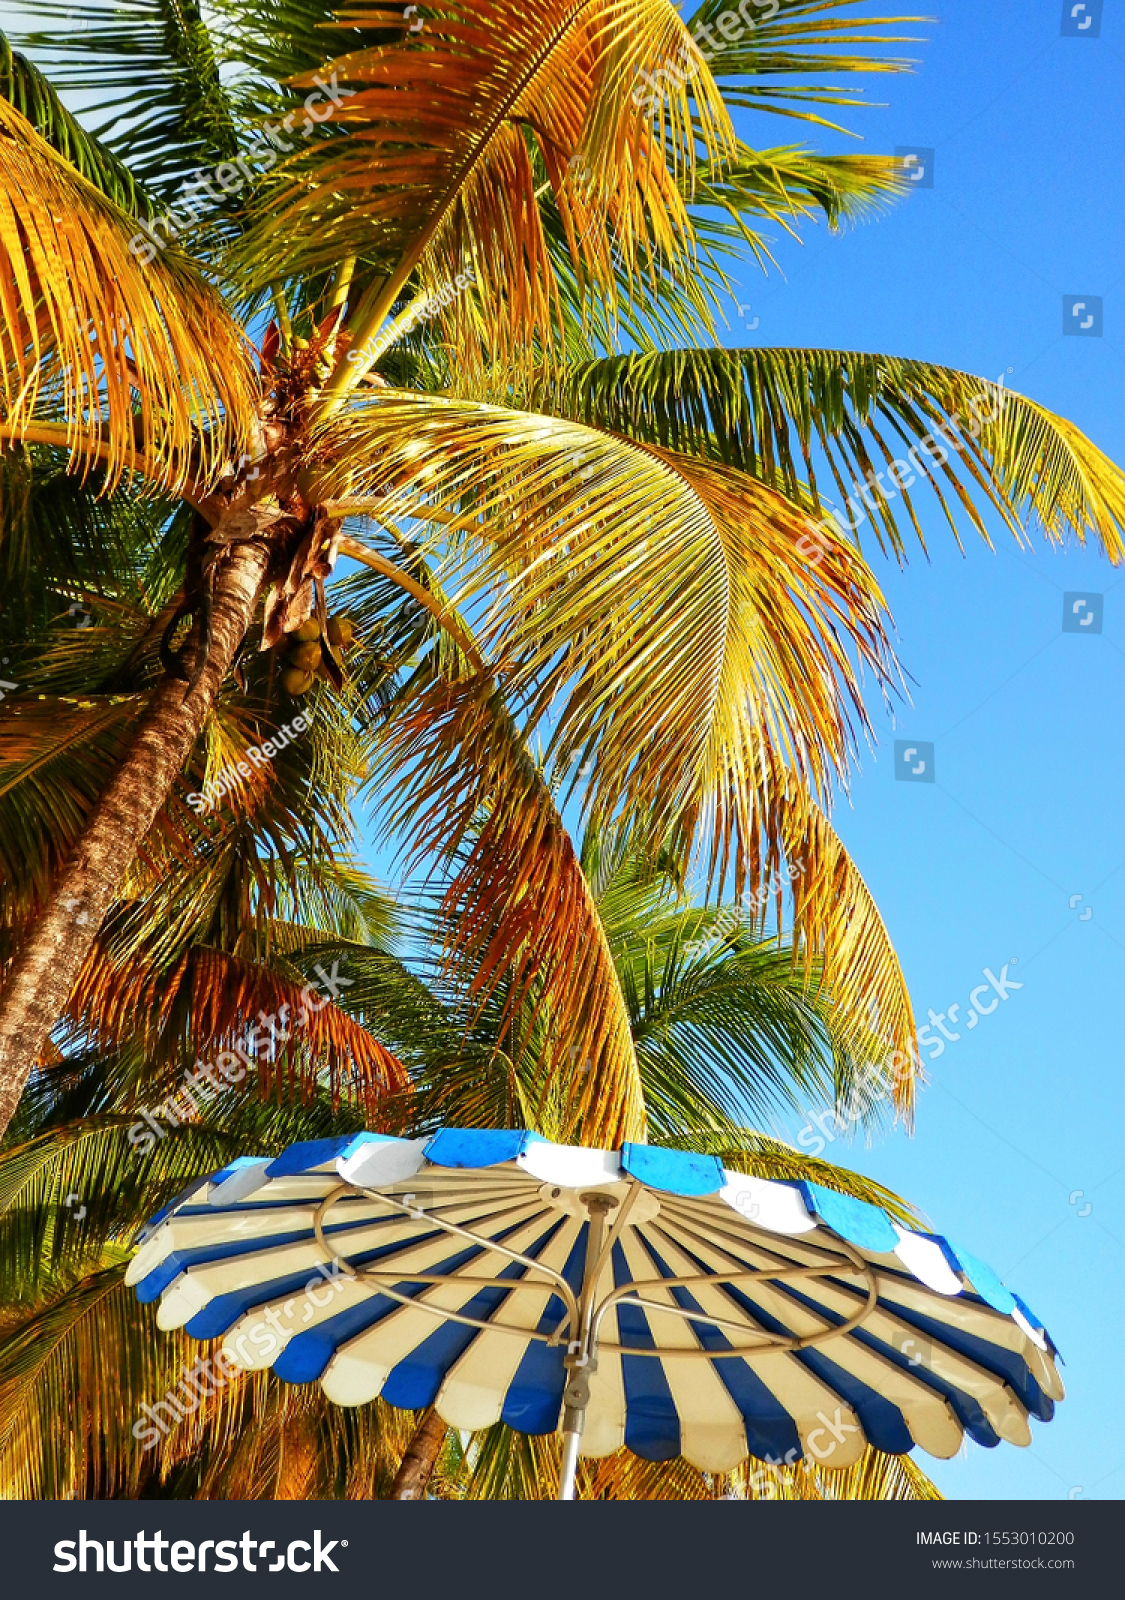 stock-photo-palm-trees-and-a-typical-par